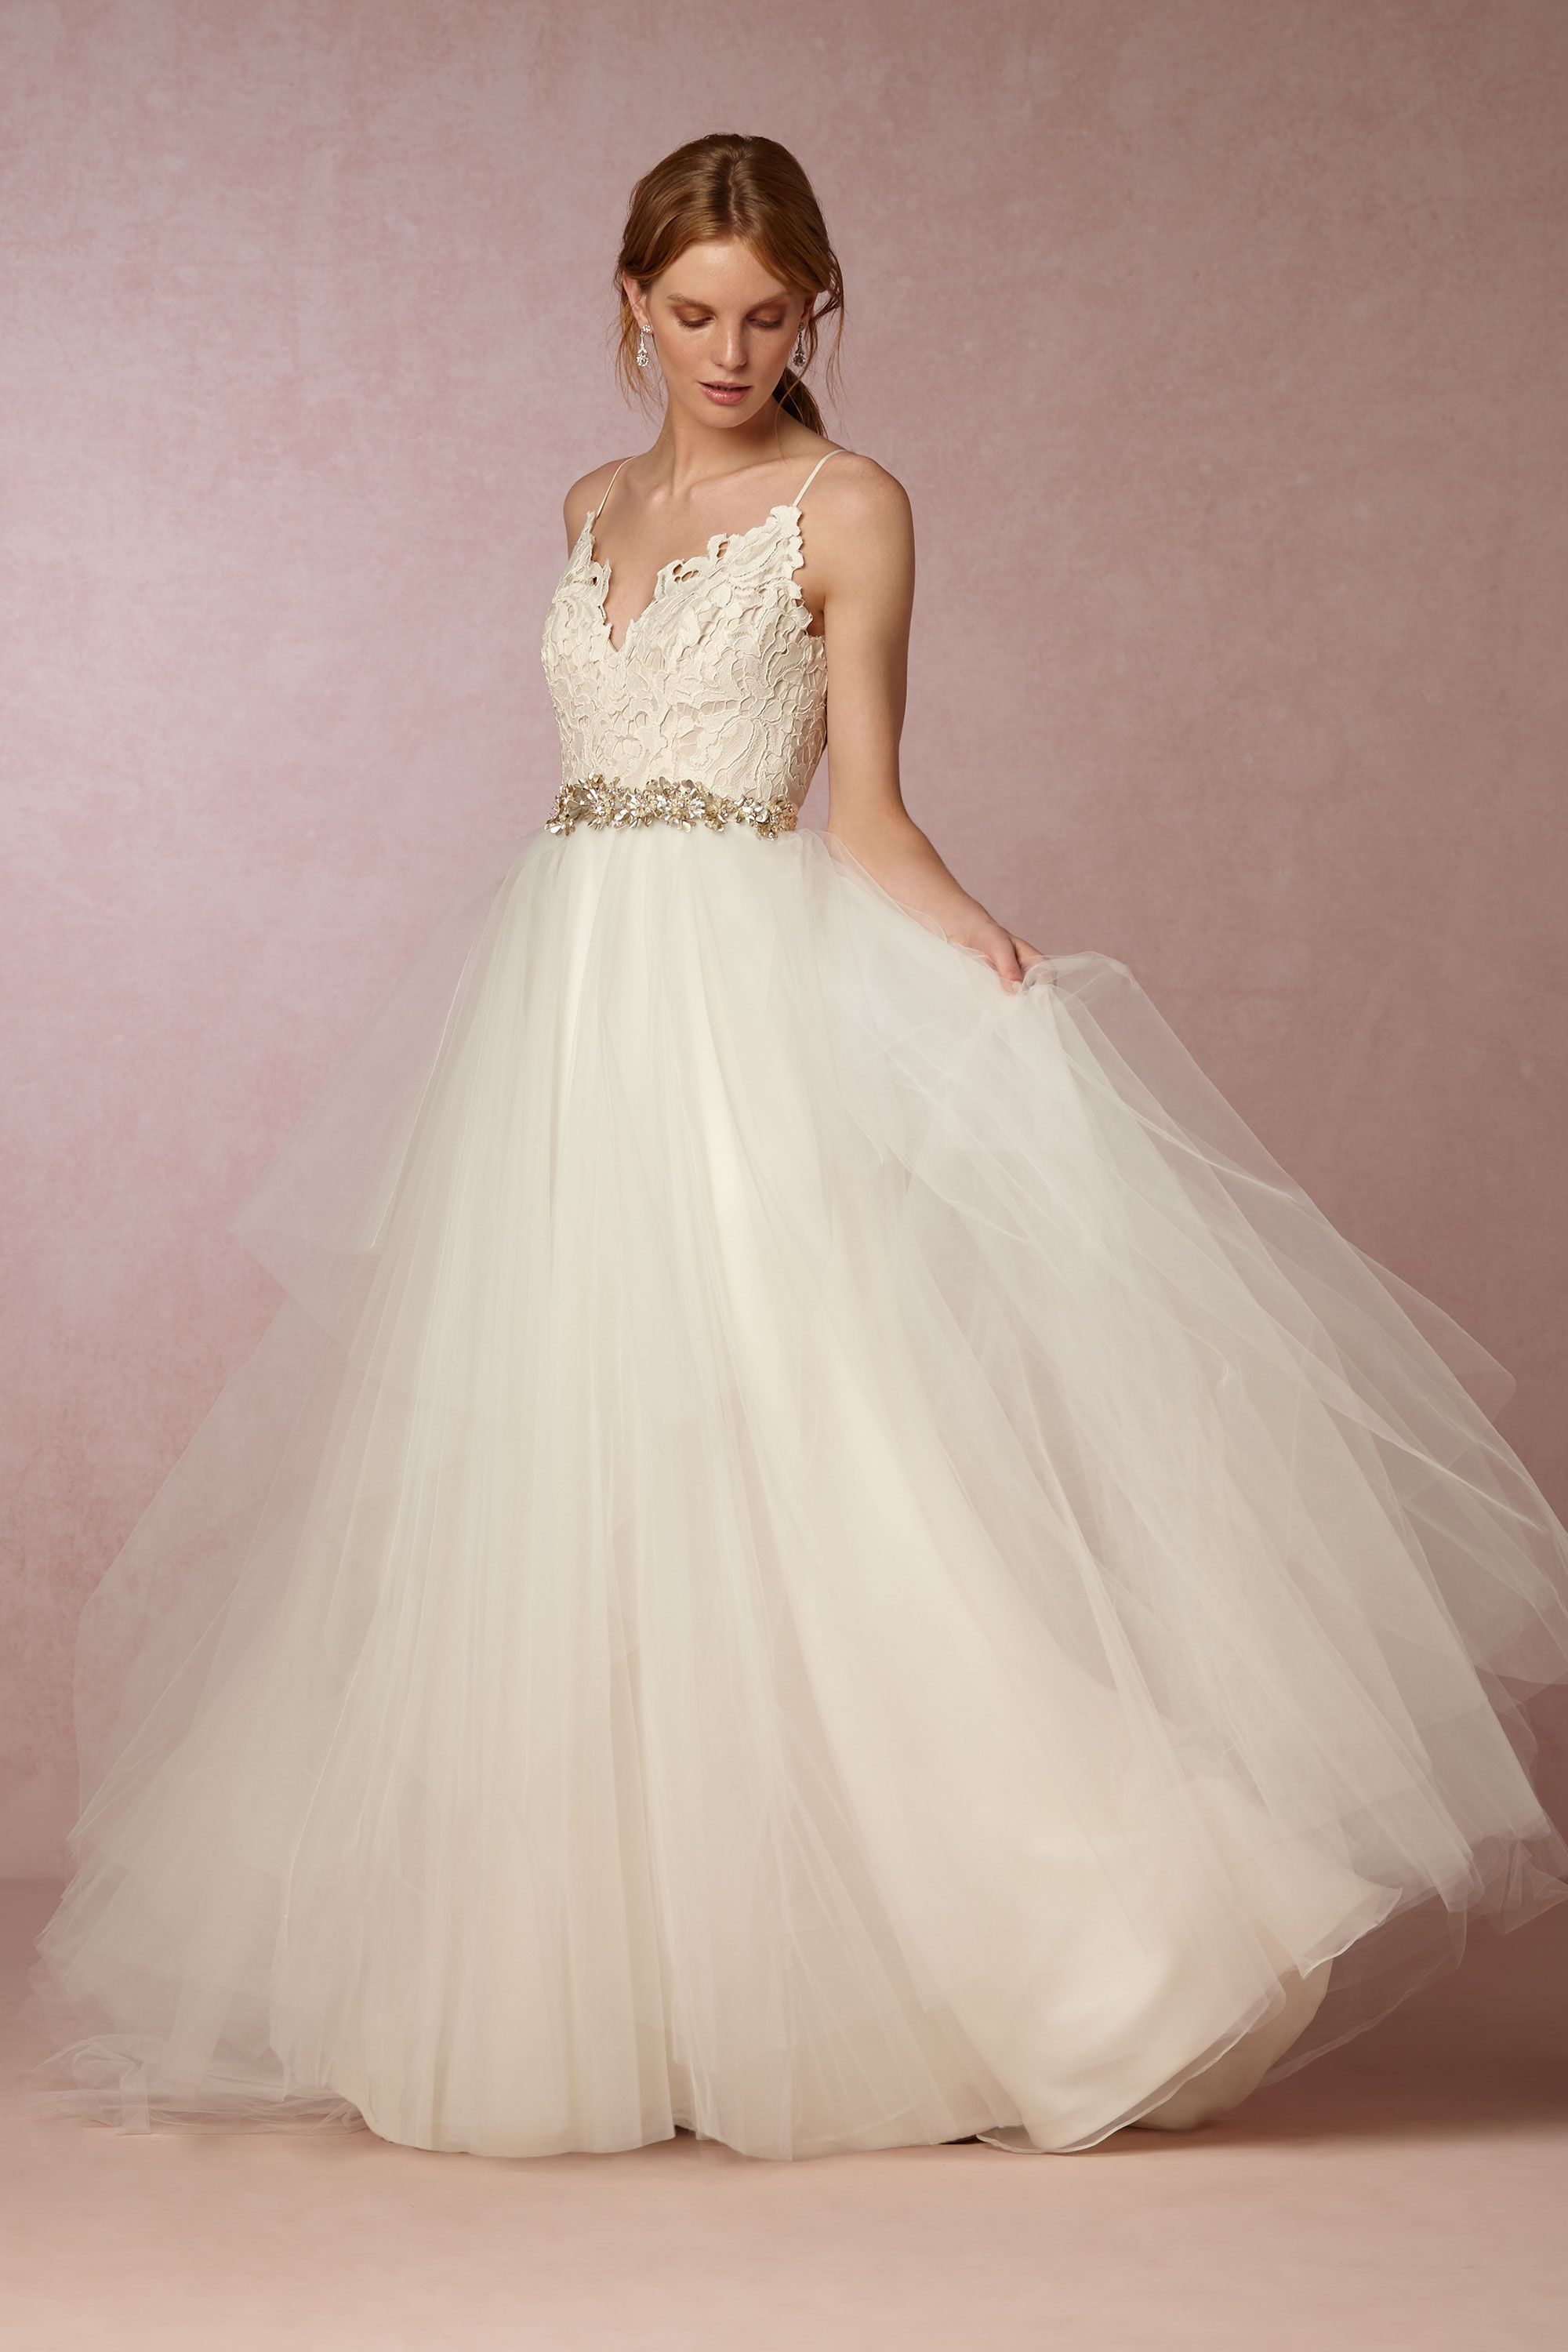 wedding gowns you wonut hate matrimony pinterest gowns